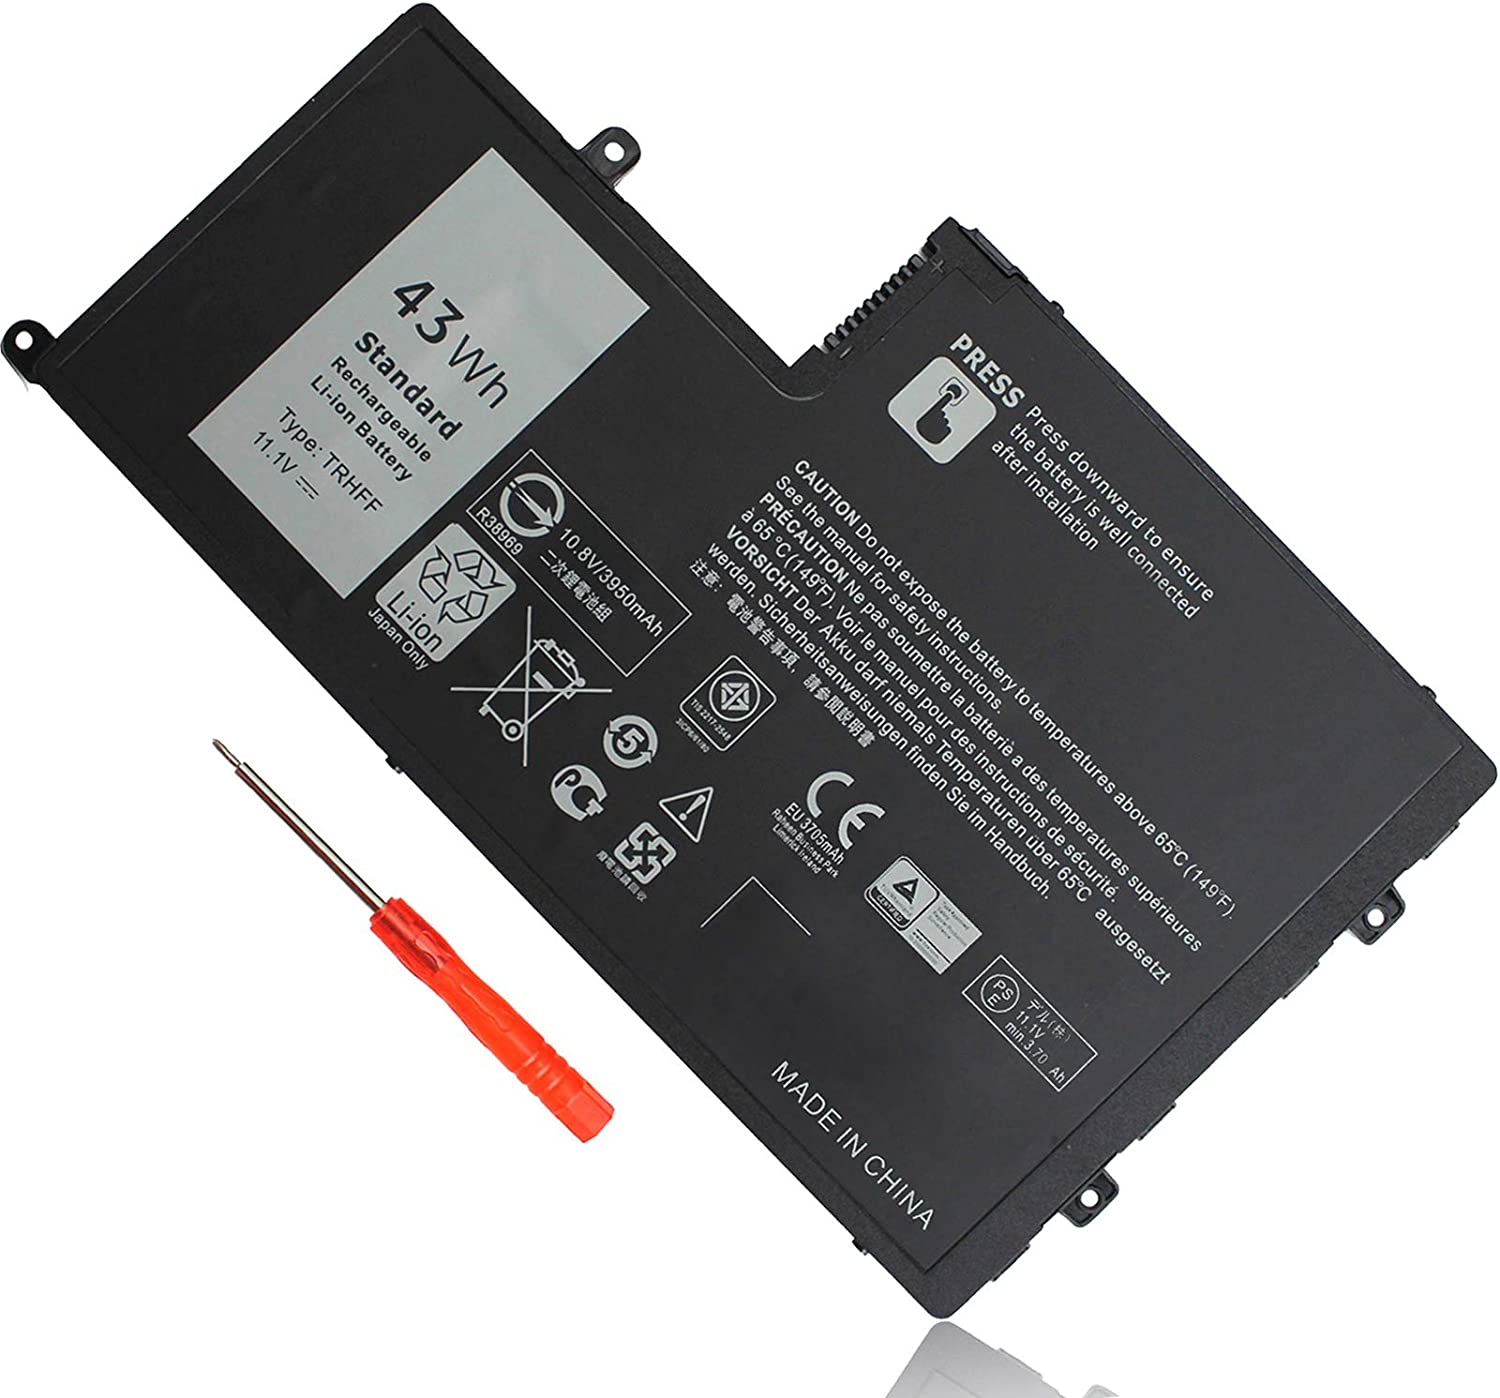 43WH Type TRHFF Battery Replacement for Dell Inspiron 14 5447 5448 15 5542 5547 N5447 N5547 Latitude 14 3450 15 3550 E3450 E3550 DL011307-PRR13G01 1V2F6 P39F